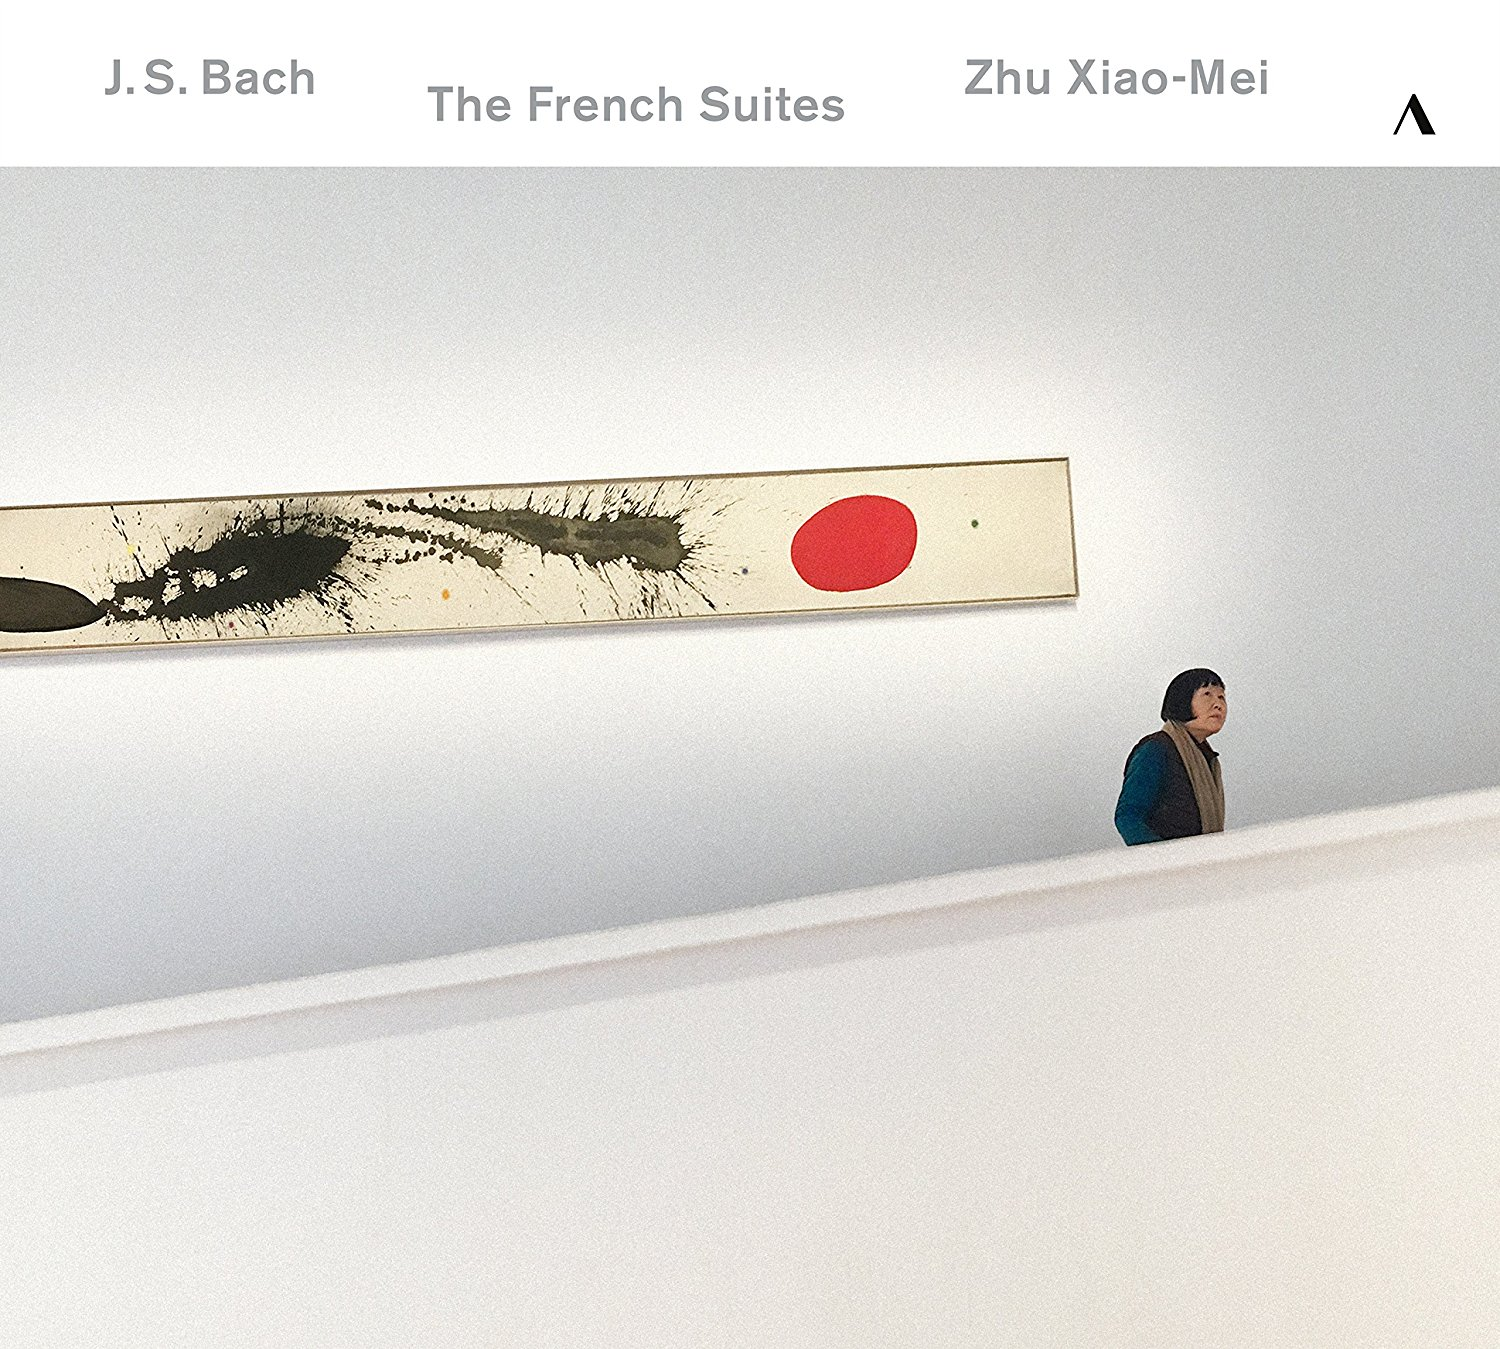 J.S. Bach: French Suites - Zhu Xiao-Mei